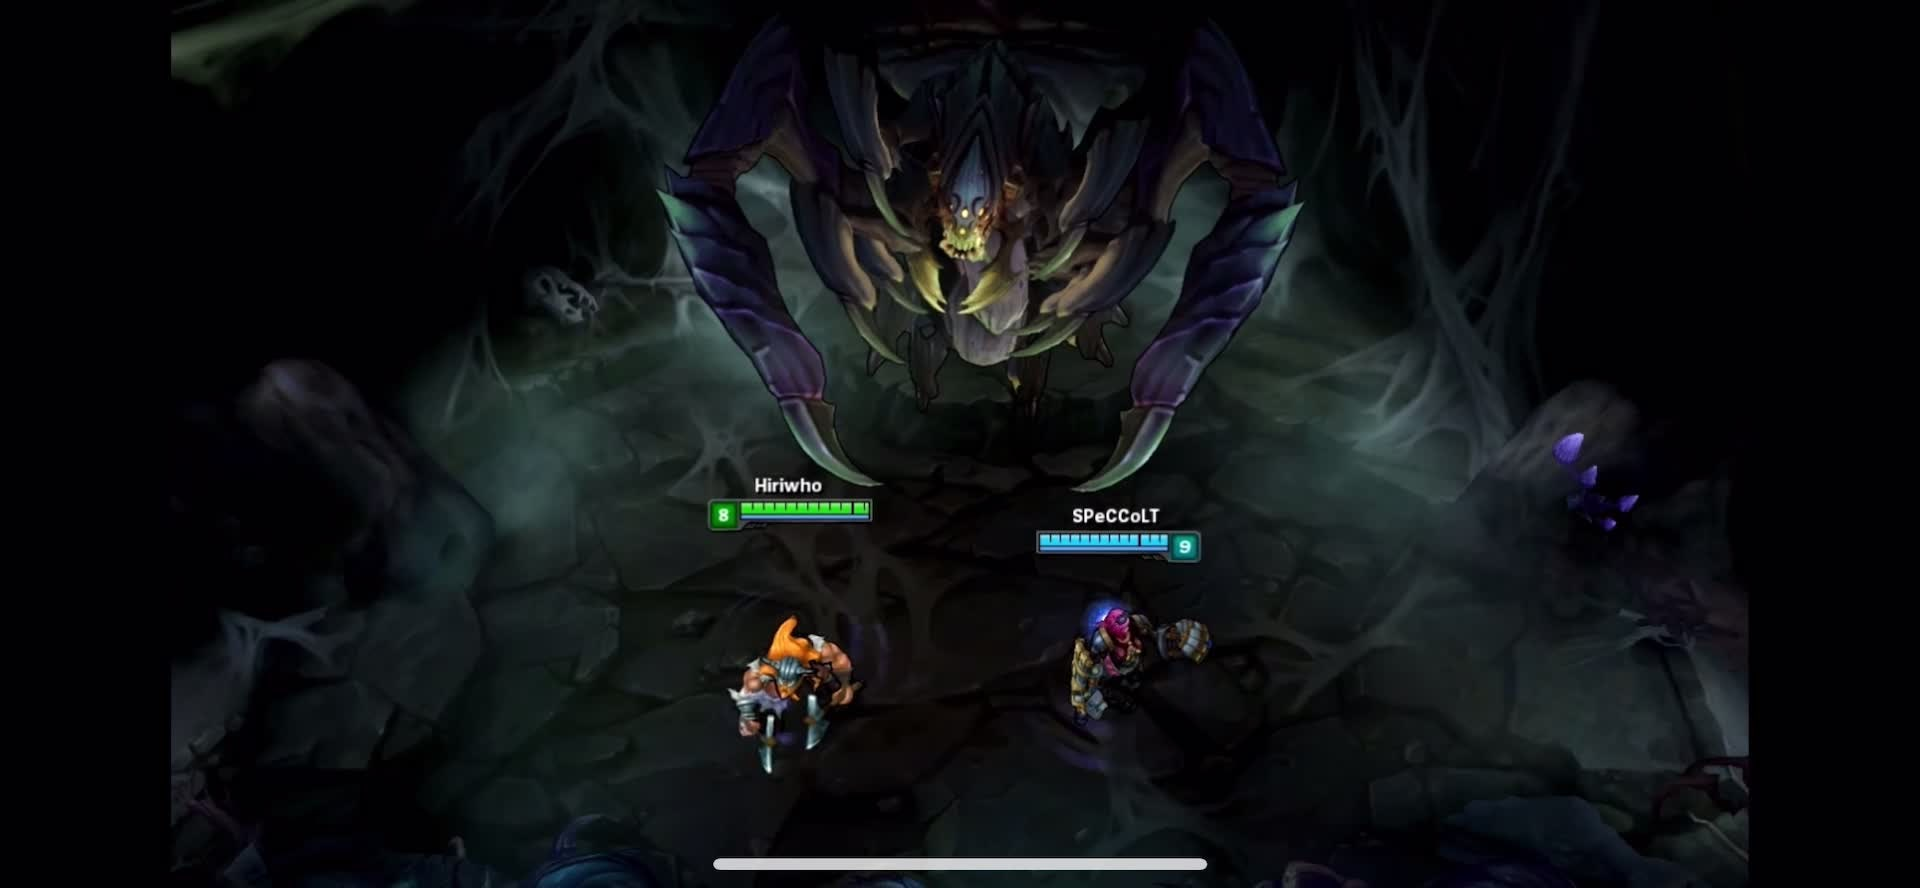 League of Legends: General - GAMES ARE AWESOME - Did you know? #34 video cover image 2